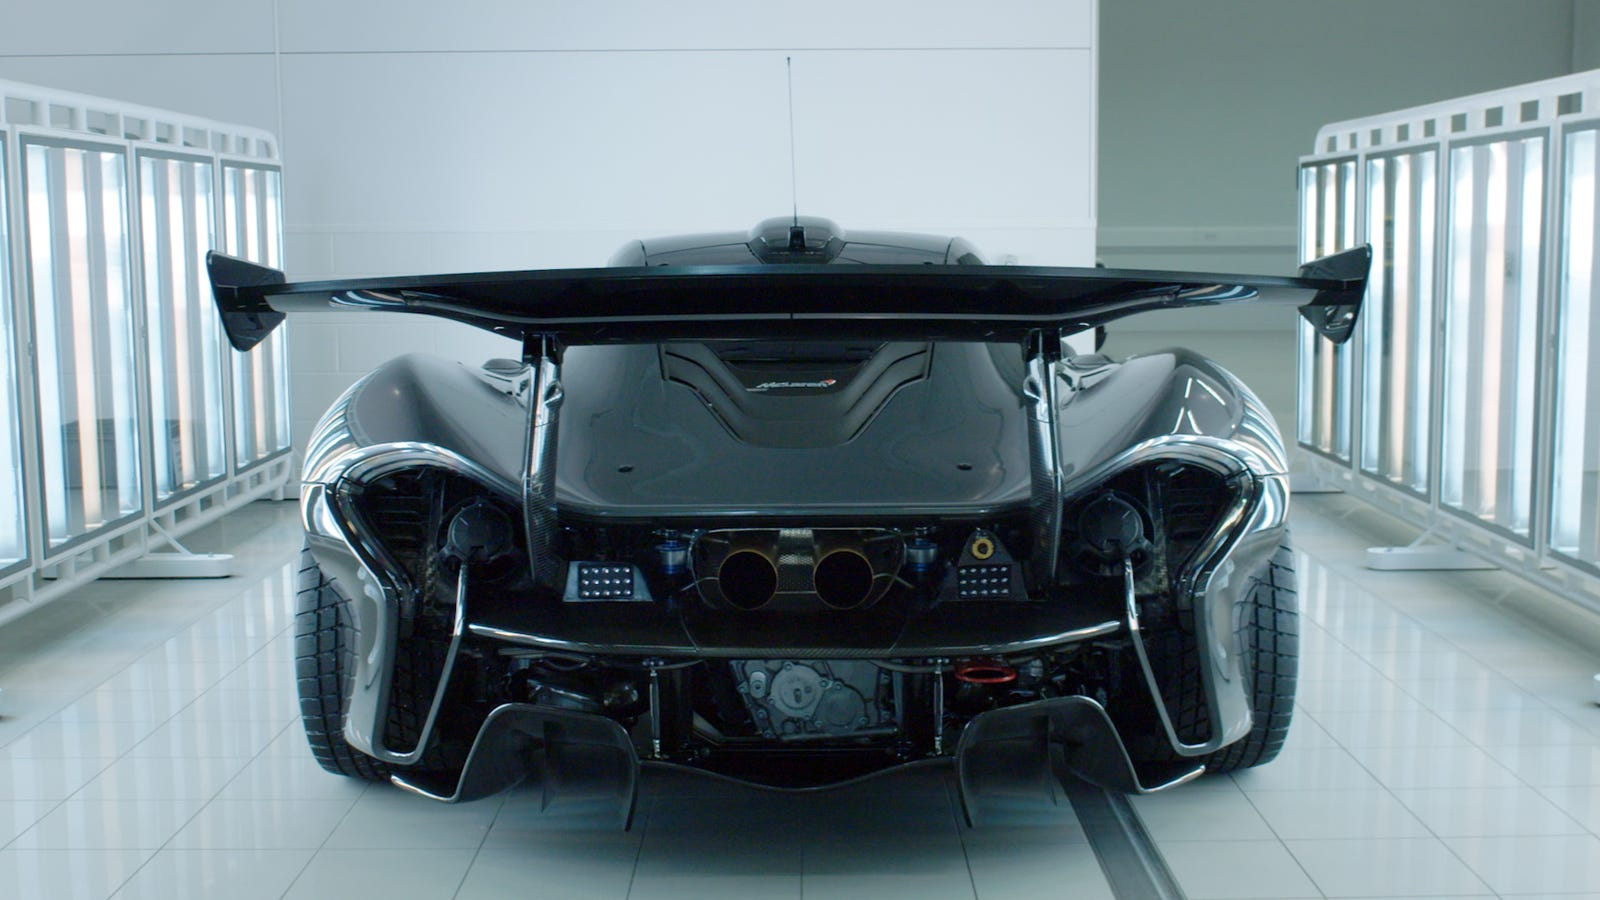 Apex The Story Of The Hypercar Shows That Something Better Is